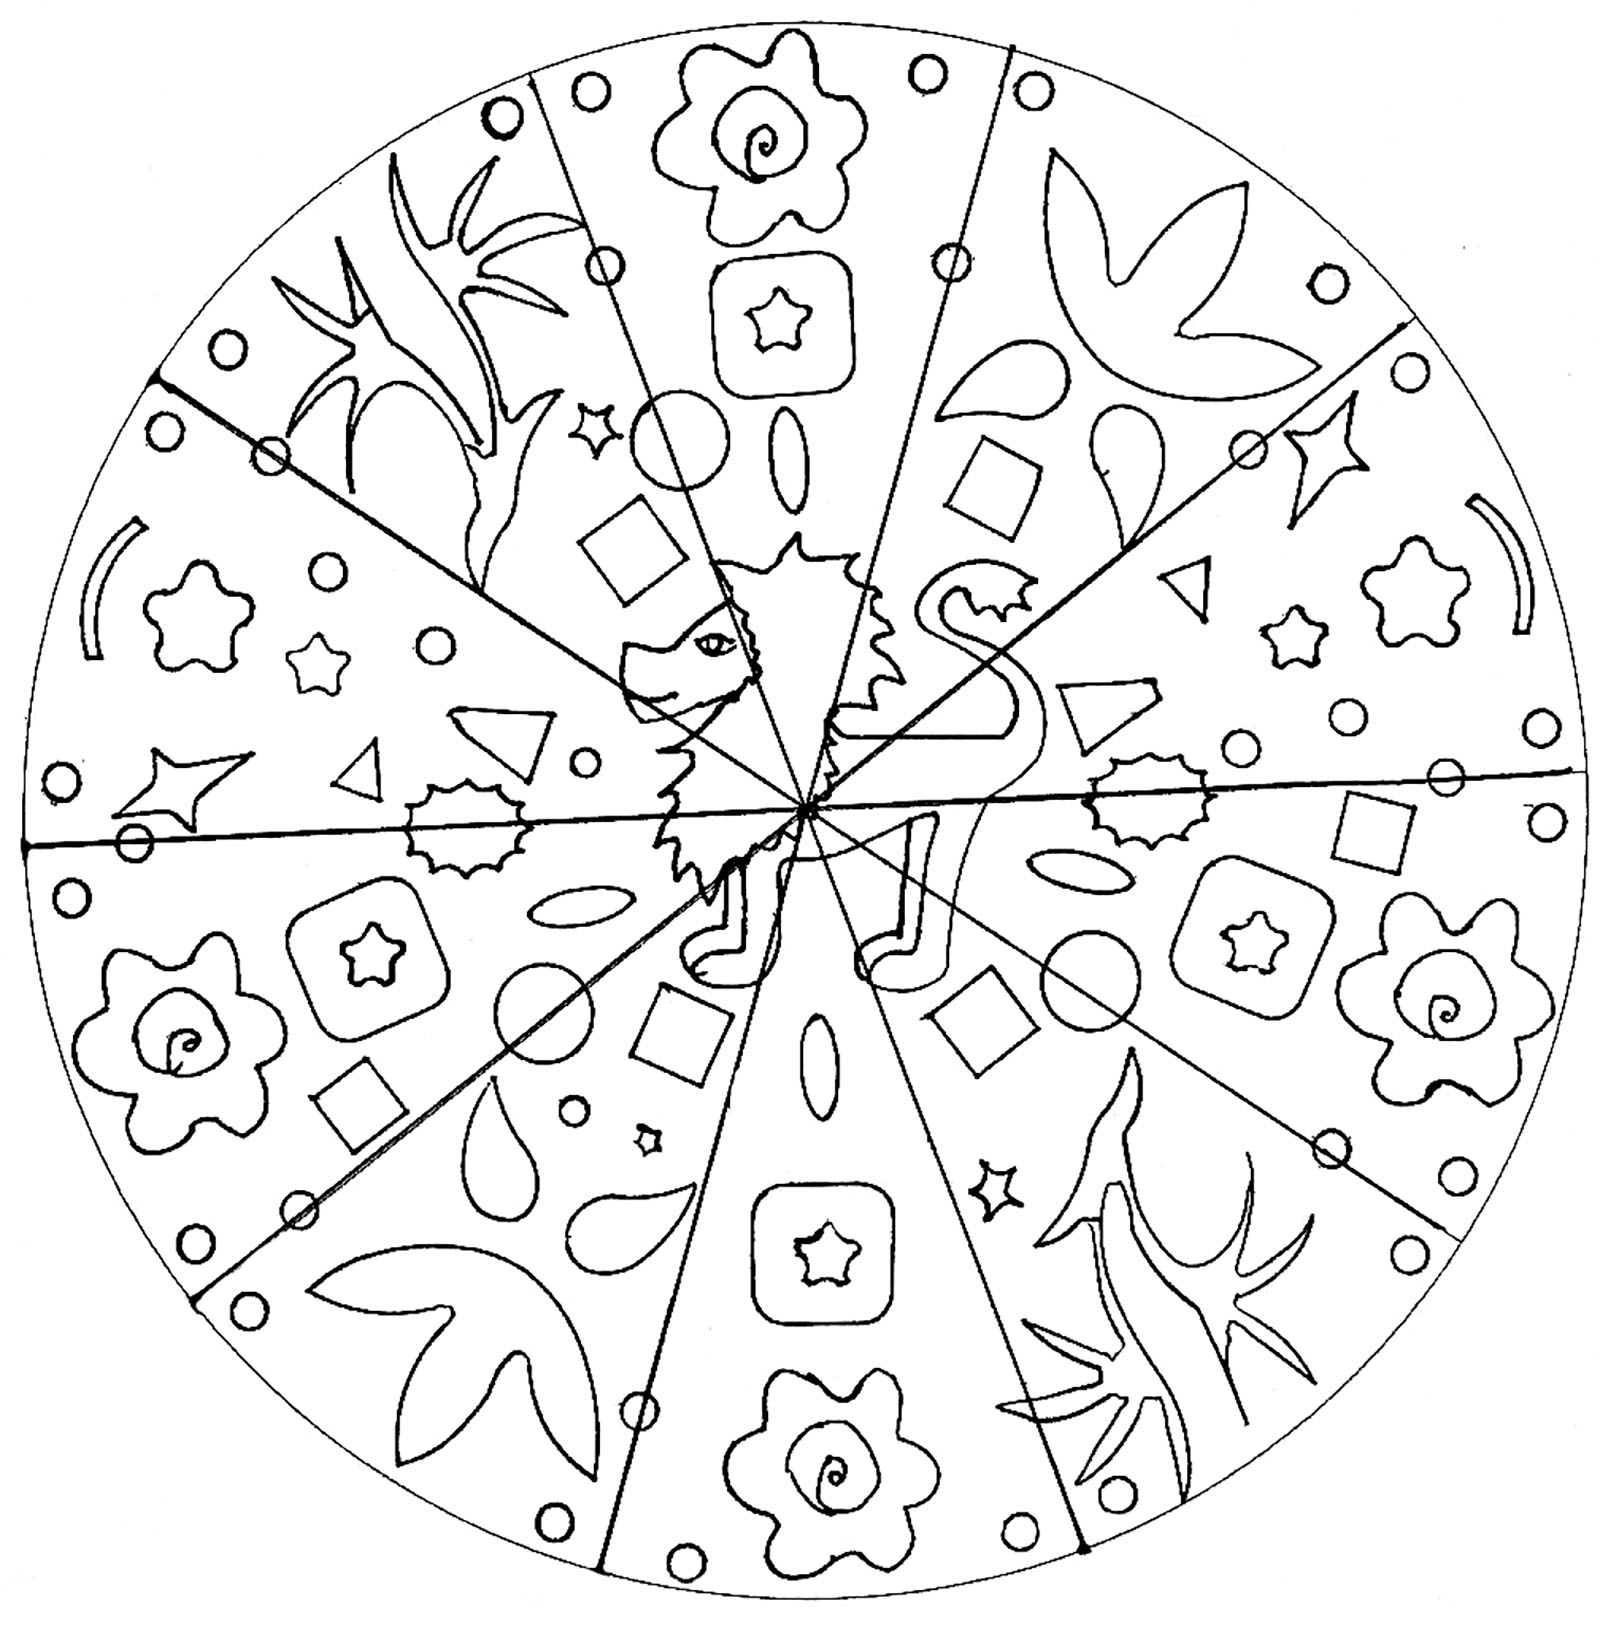 mandala hand coloring pages mandala hand coloring pages pages mandala hand coloring